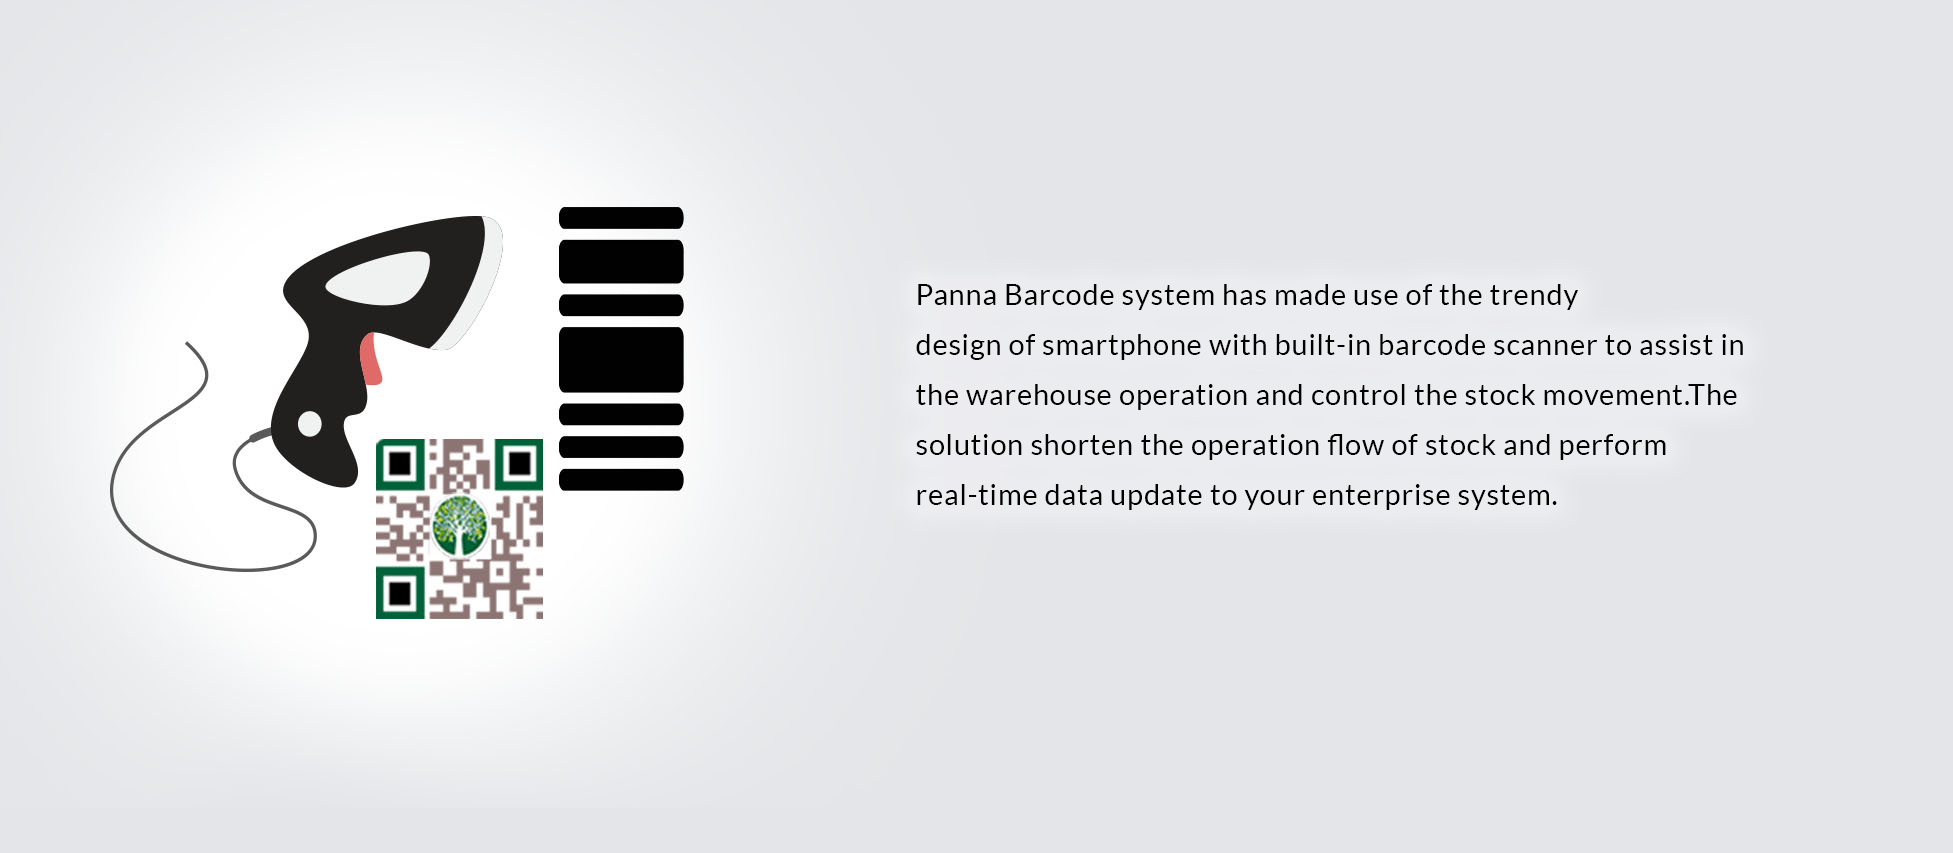 Panna Barcode system has made use of the trendy 